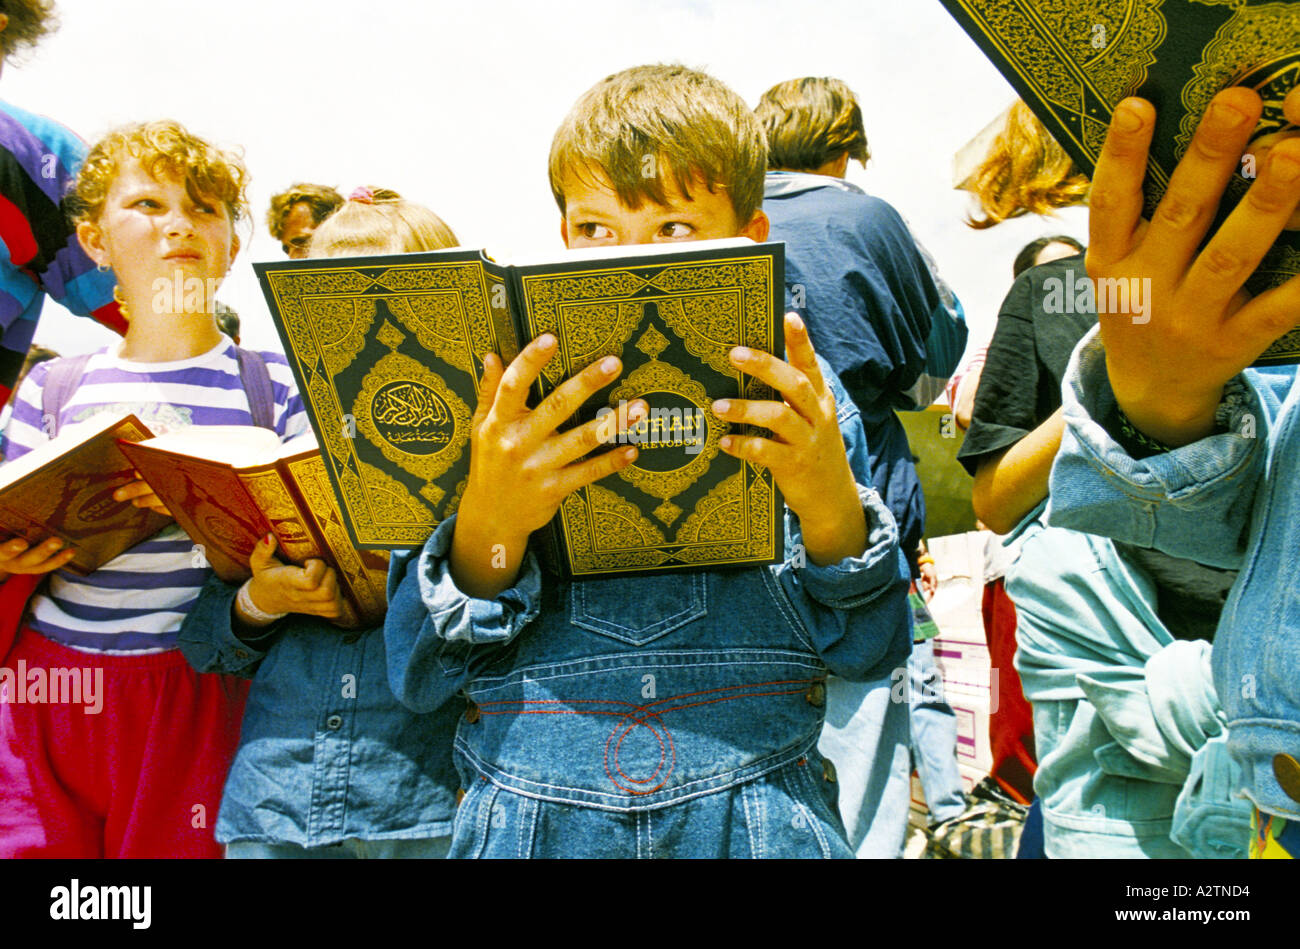 central bosnia june 1995 refugees arrive from macedonia to return to sarajevo children reading the koran - Stock Image